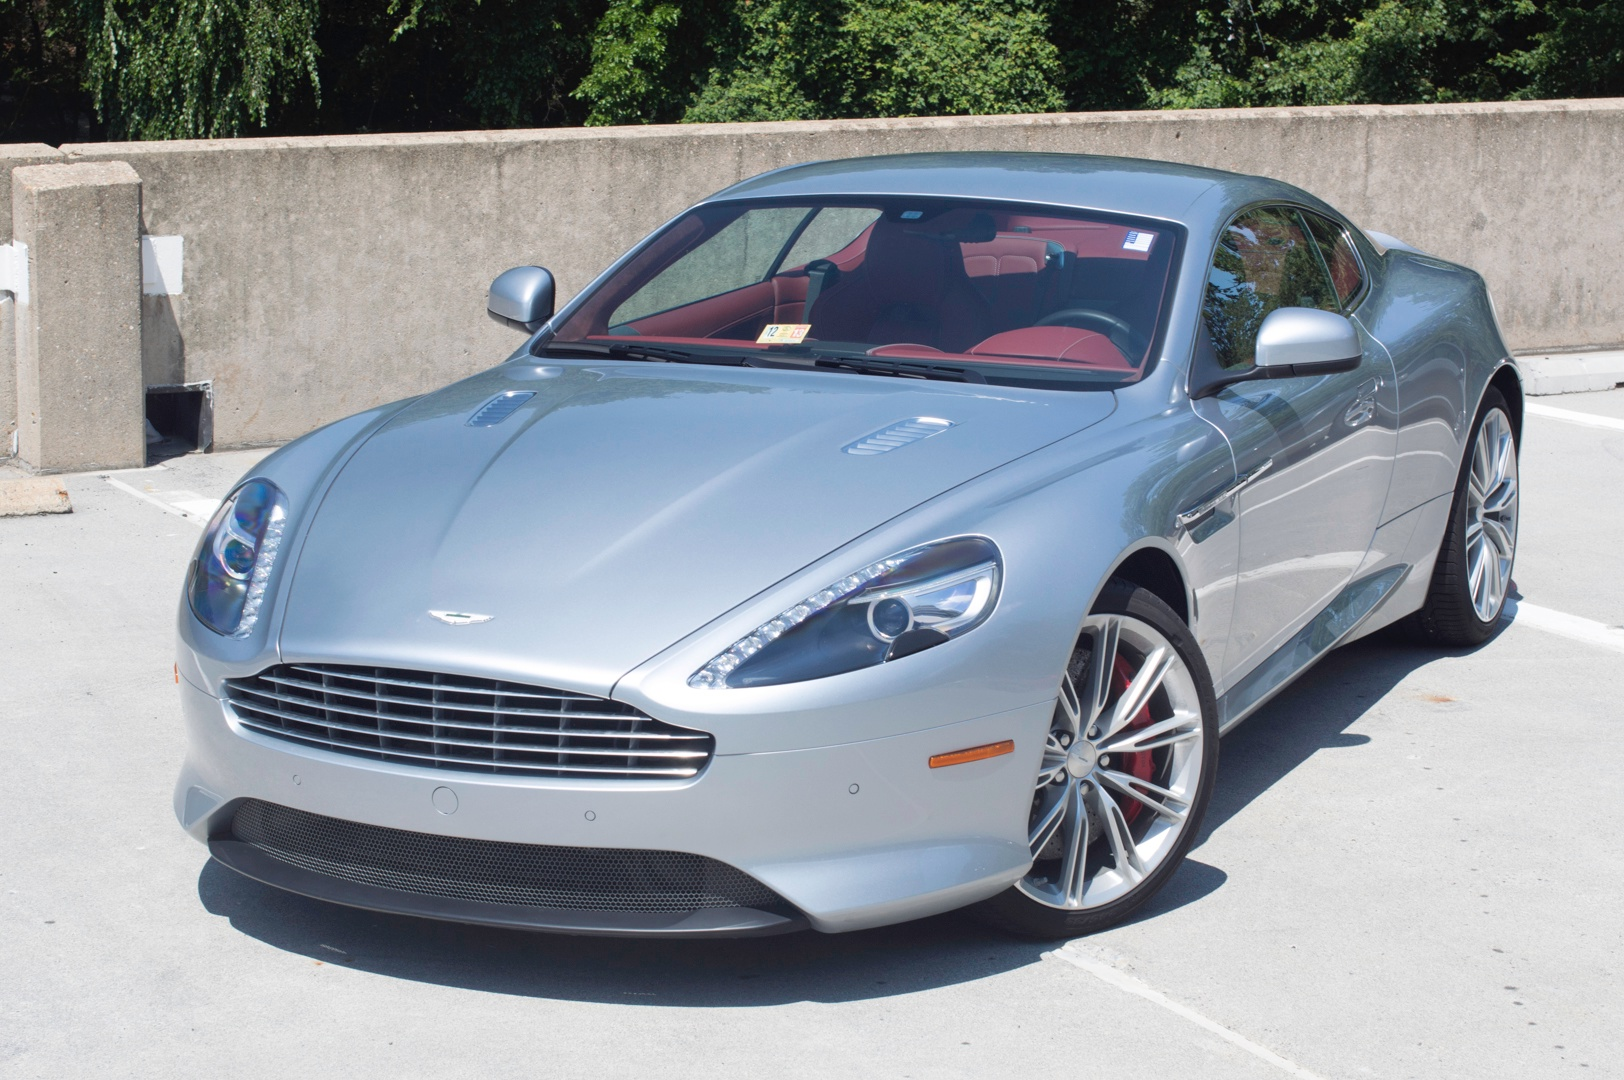 2013 Aston Martin Db9 Stock 3na14750 For Sale Near Vienna Va Va Aston Martin Dealer